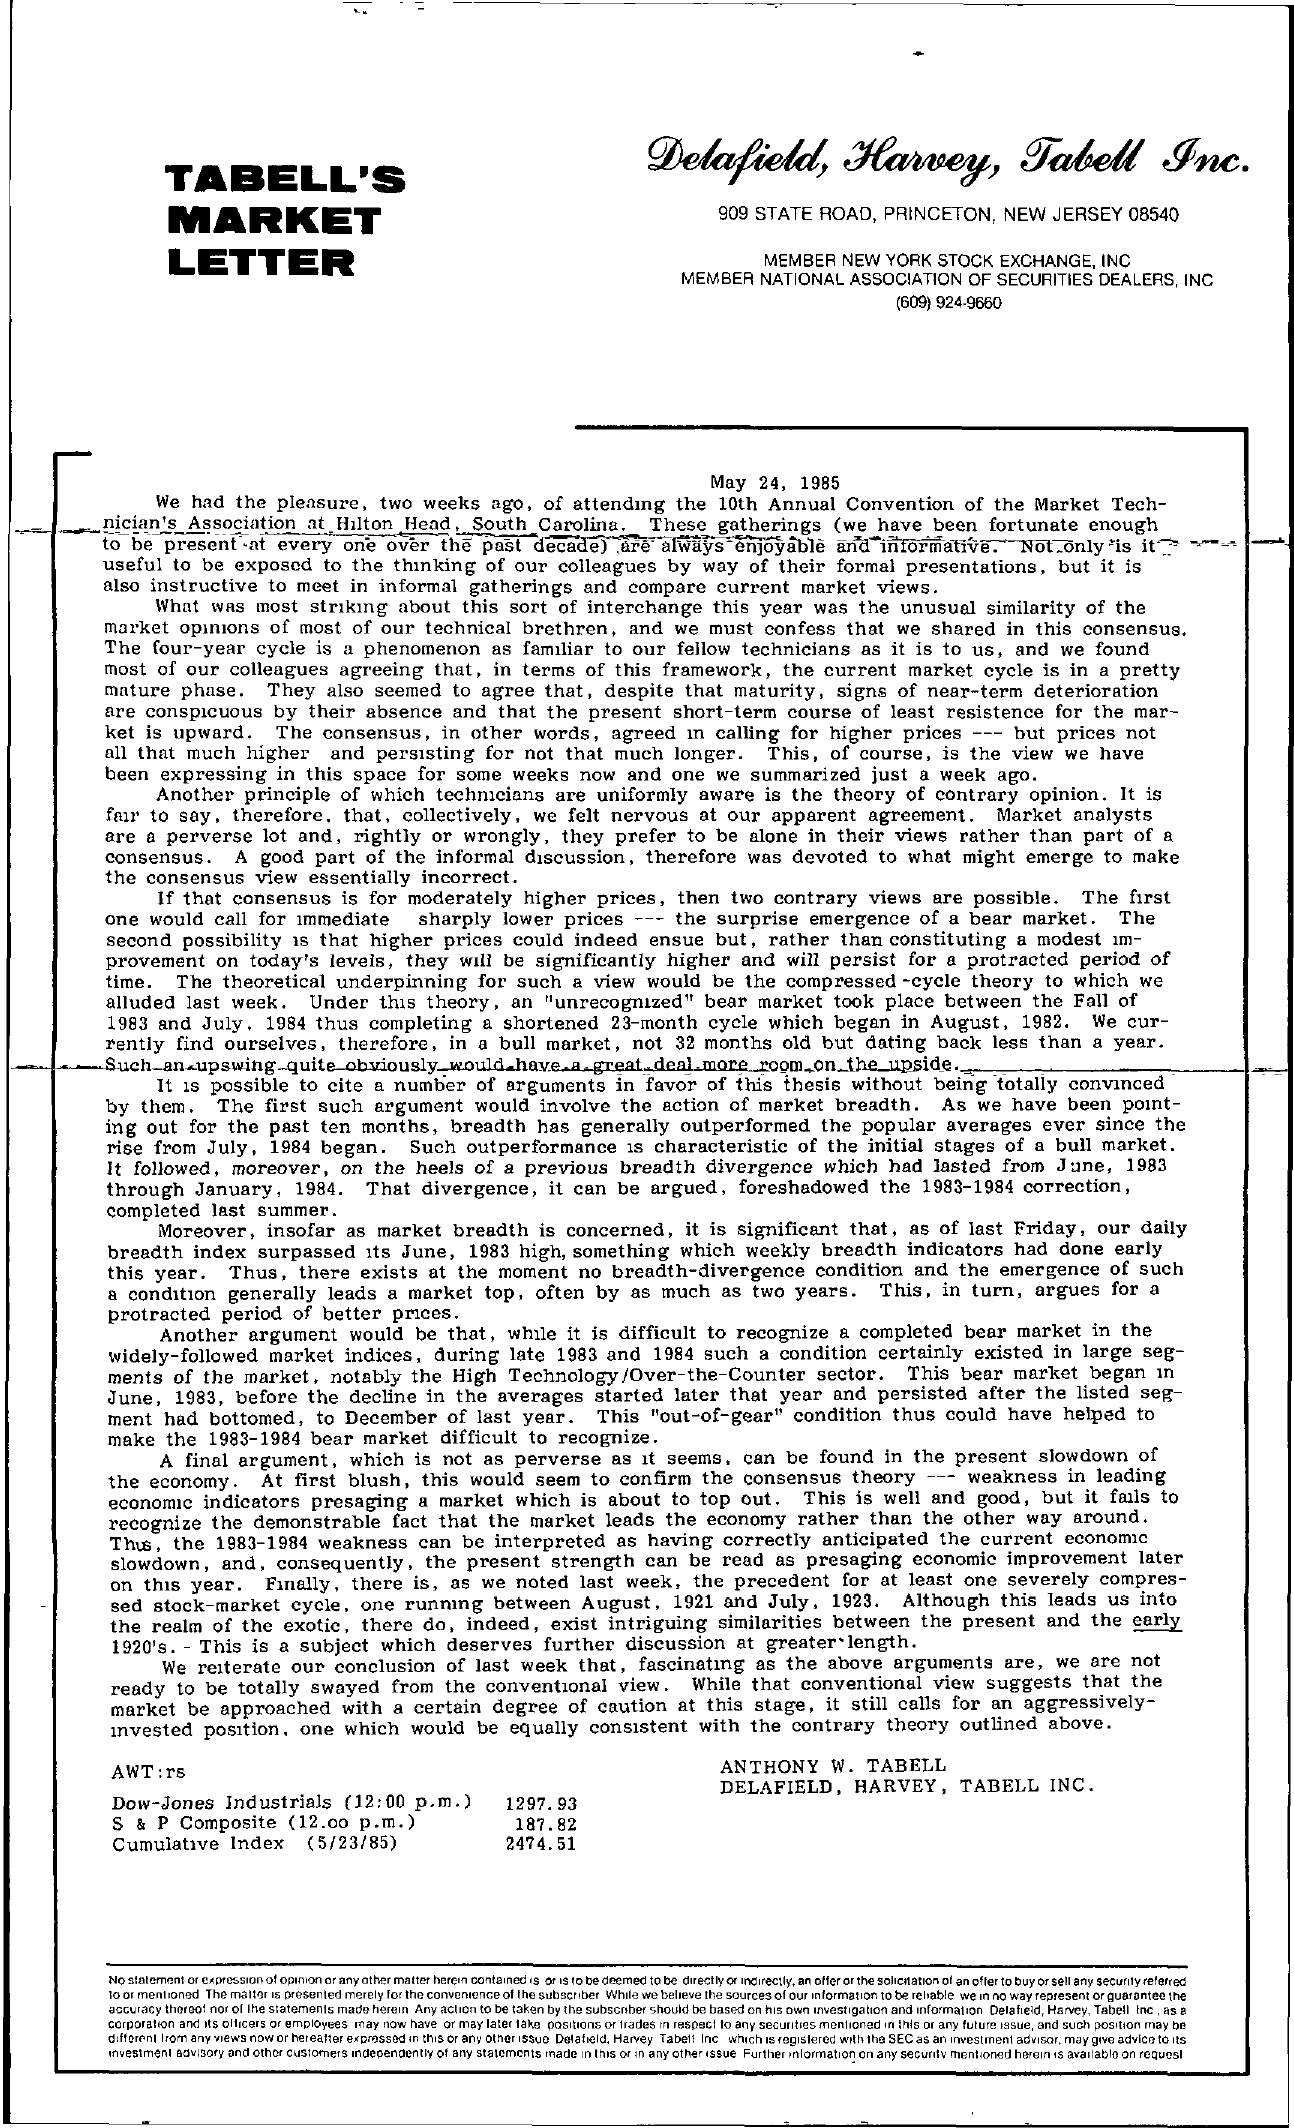 Tabell's Market Letter - May 24, 1985